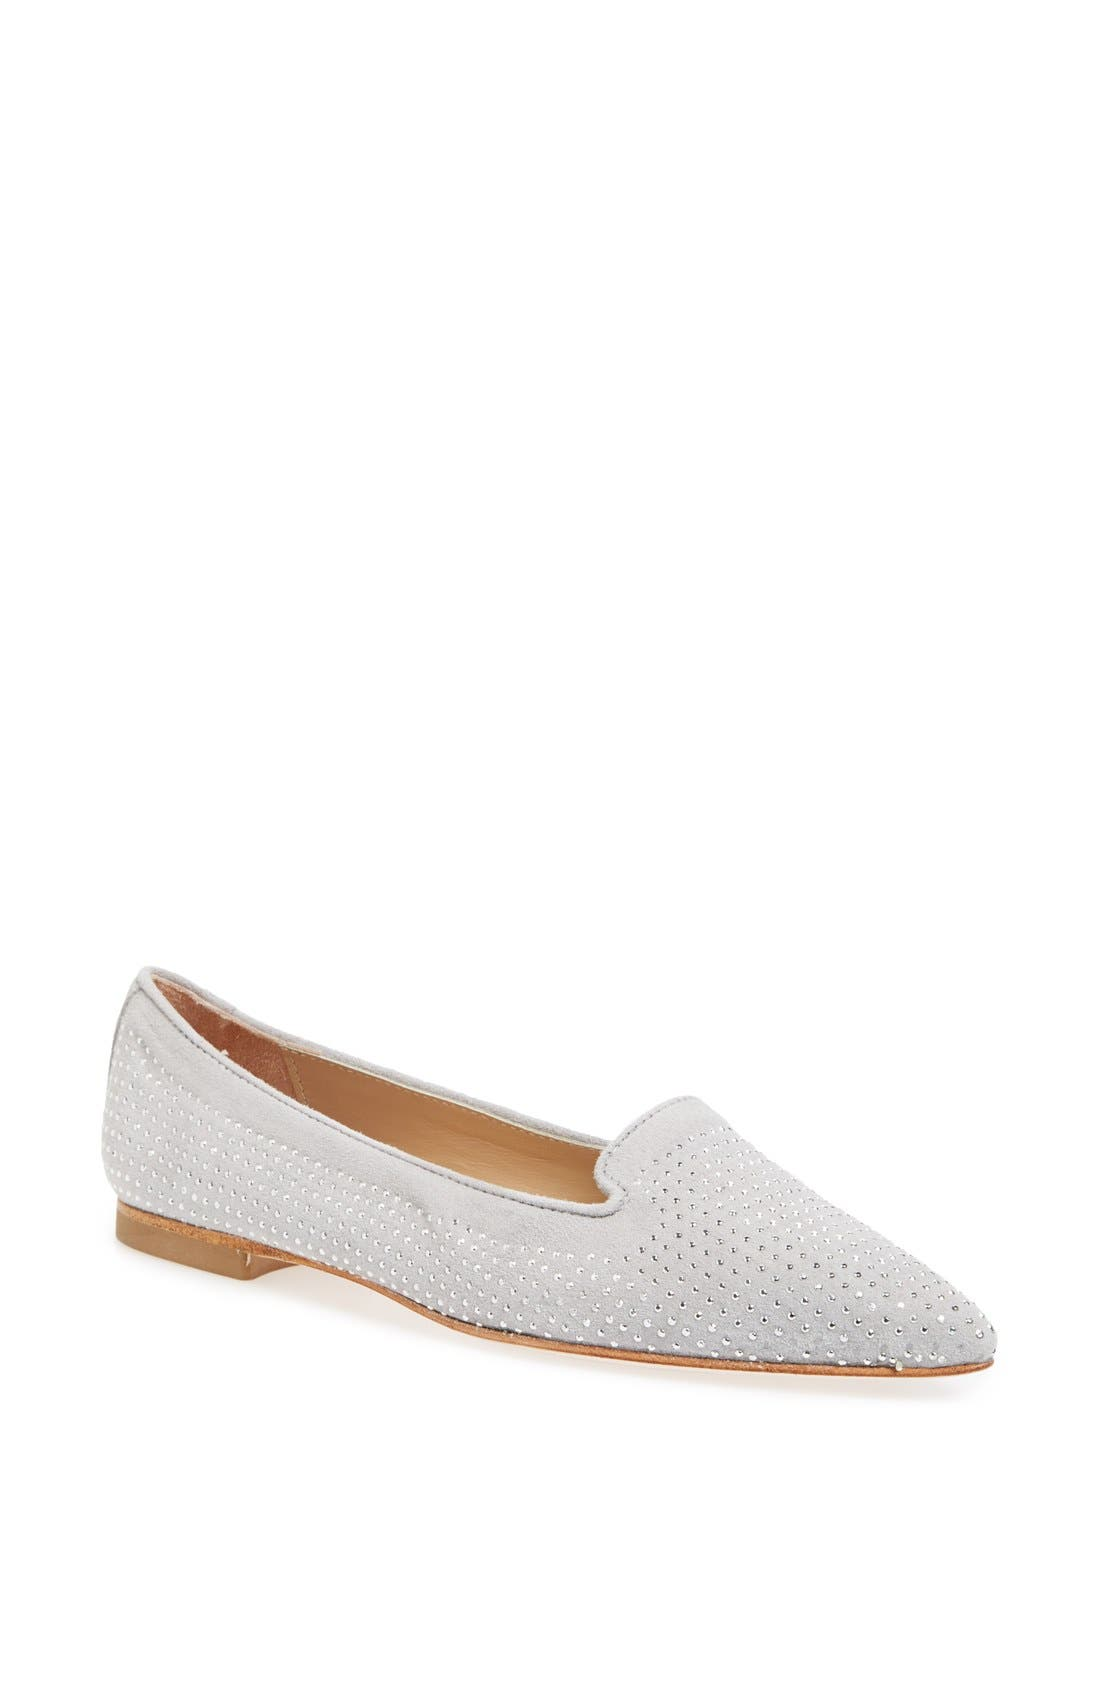 Main Image - Hego's Studded Suede Flat